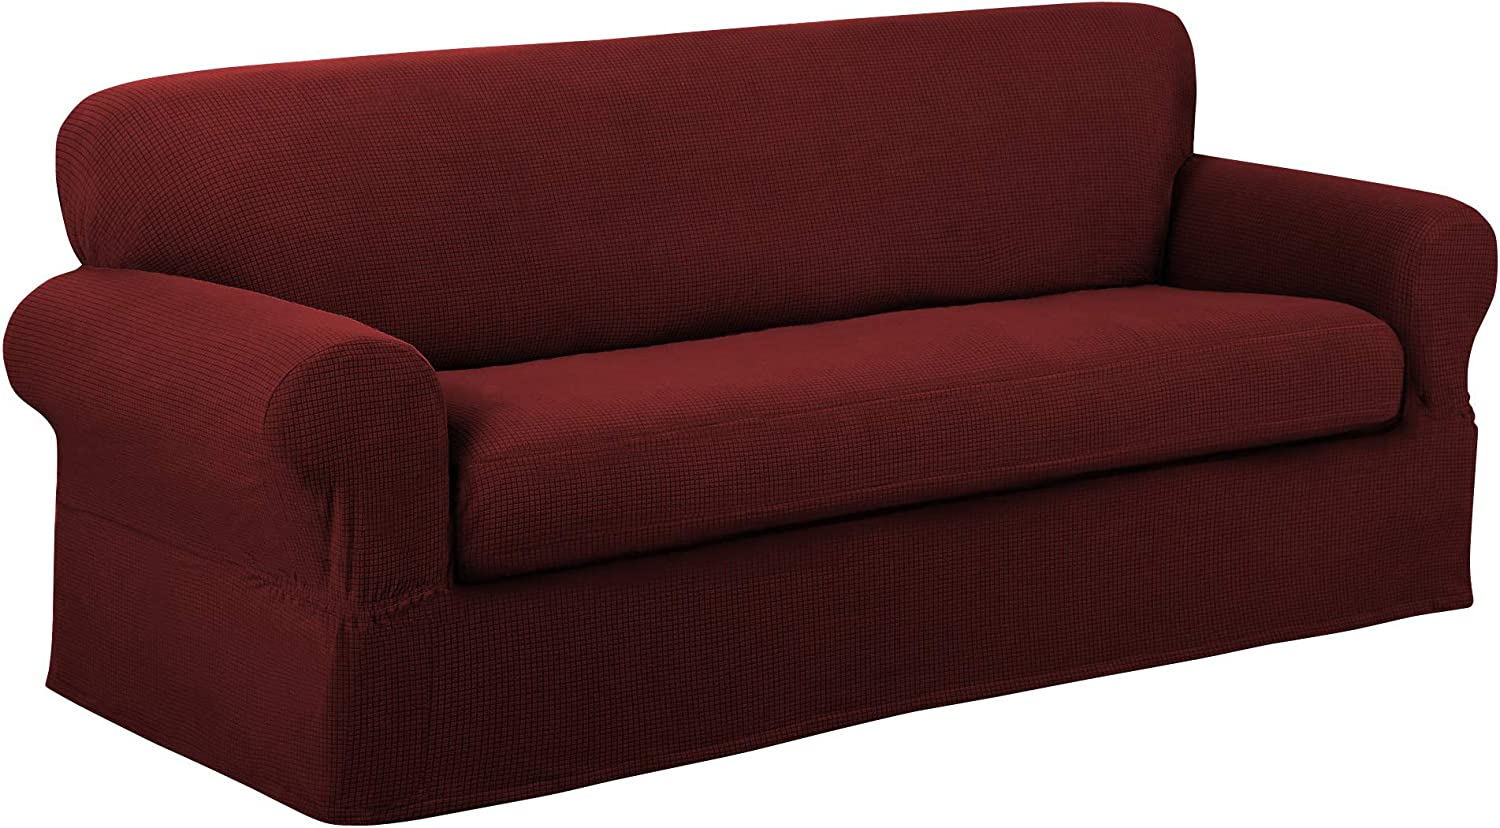 2x Spandex Stretch Sofa Separate Single Cushion Slipcover Cover Replace Red